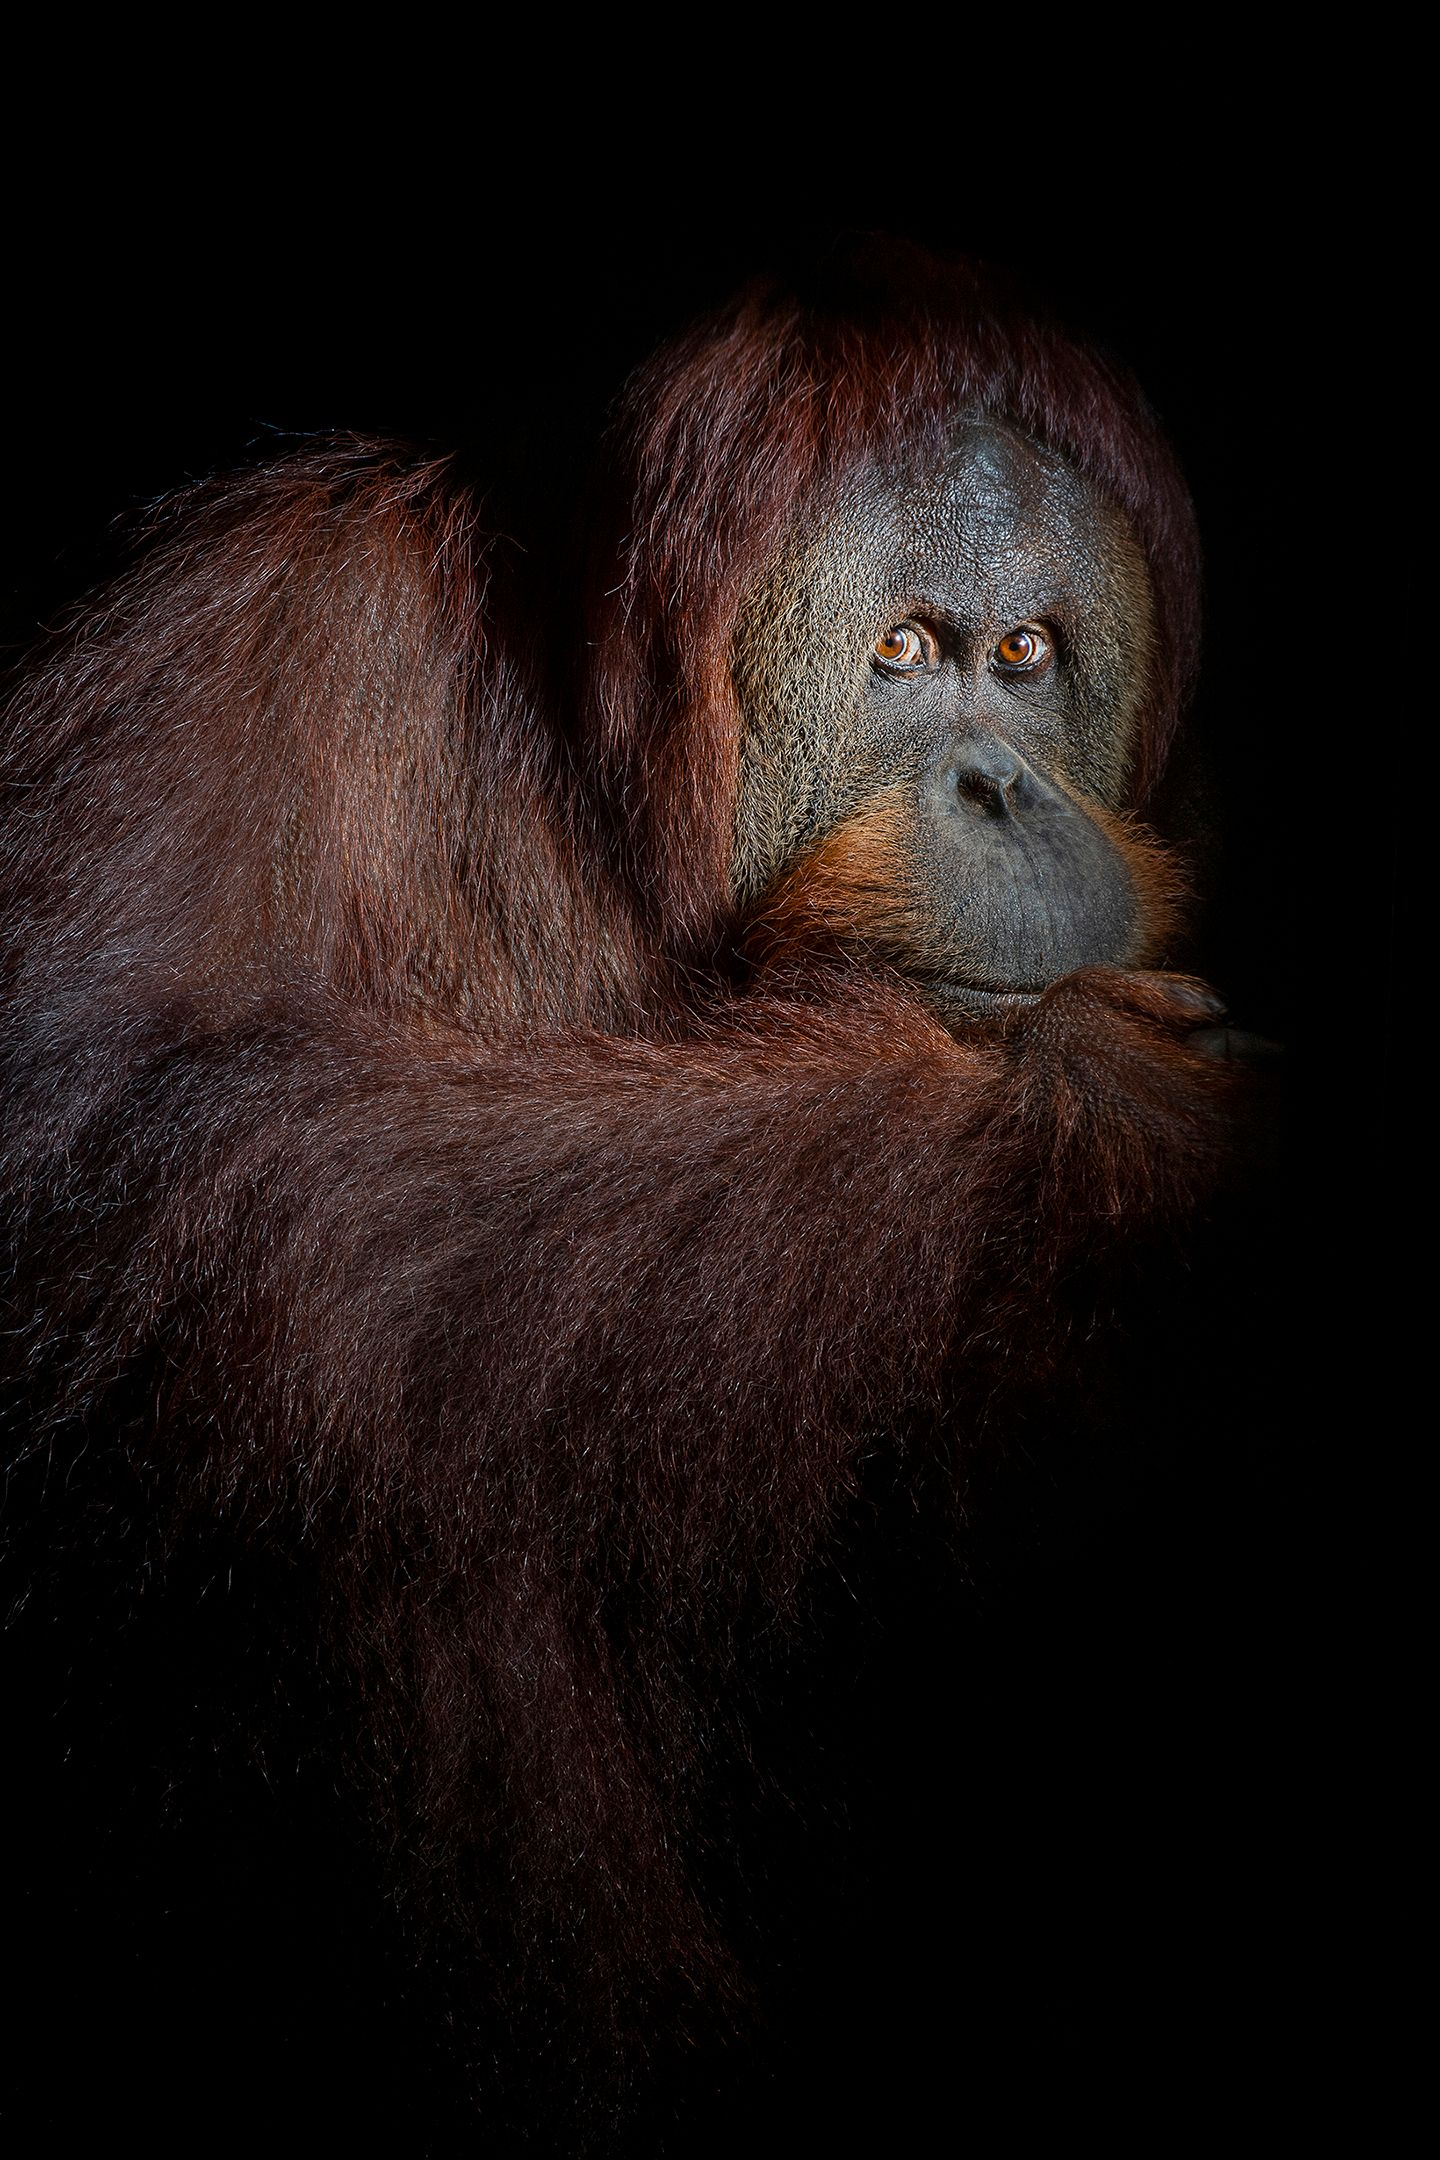 orang_03_USA_FL_Center_for_Great_Apes_Kiki_6394.jpg